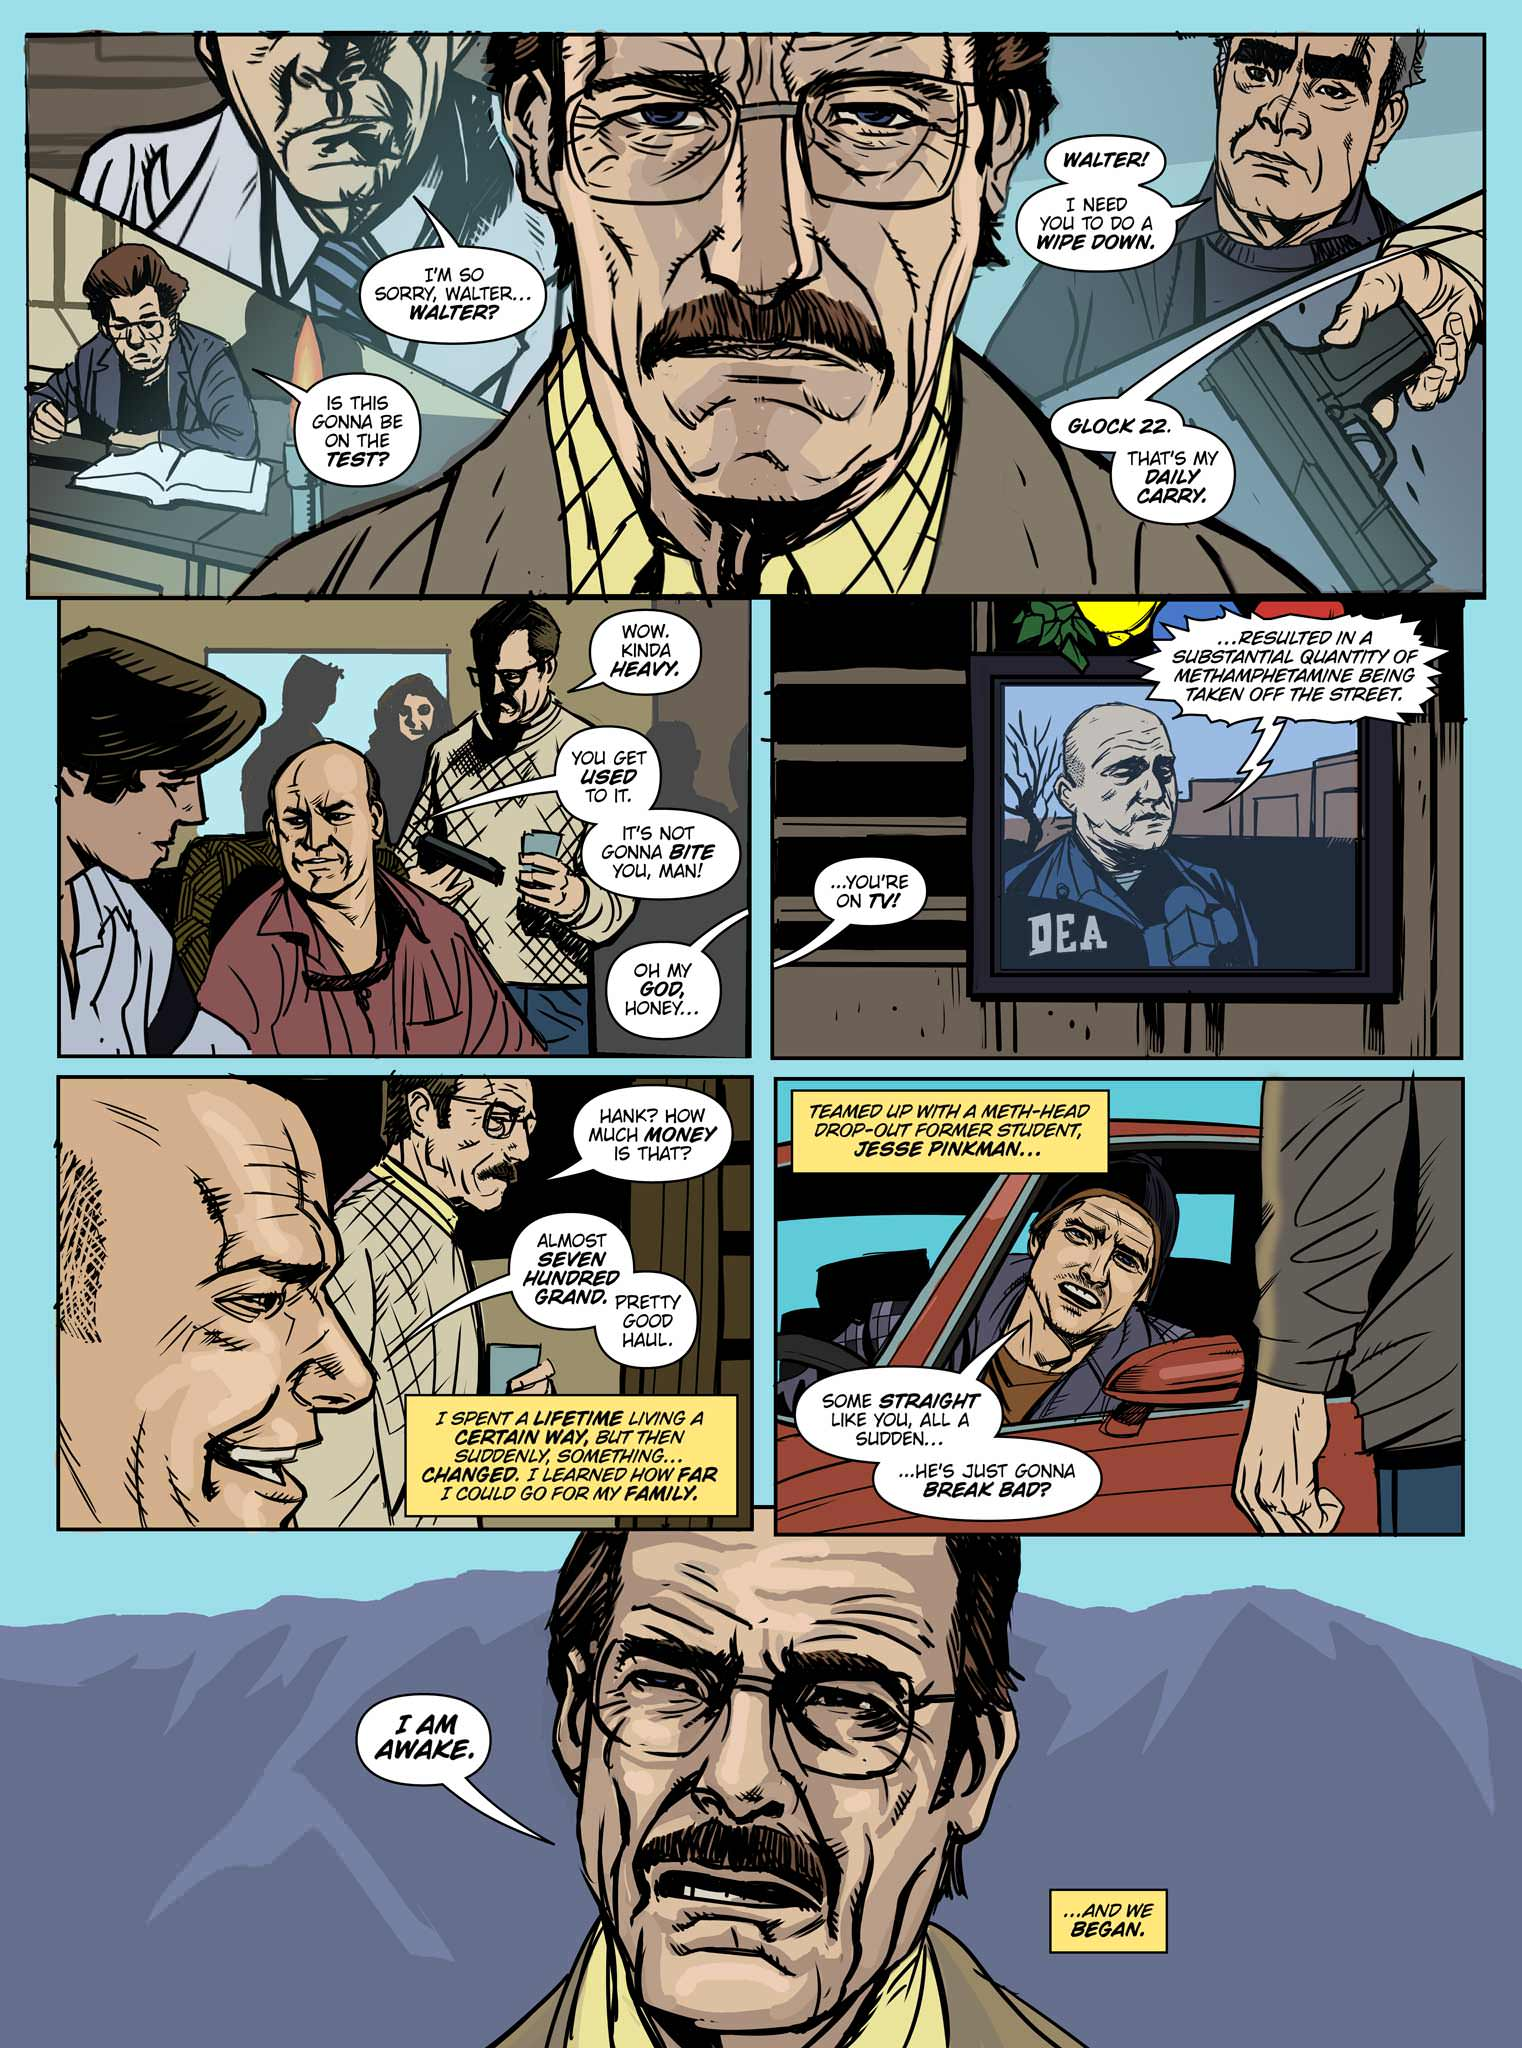 Read online Breaking Bad: All Bad Things comic -  Issue # Full - 3